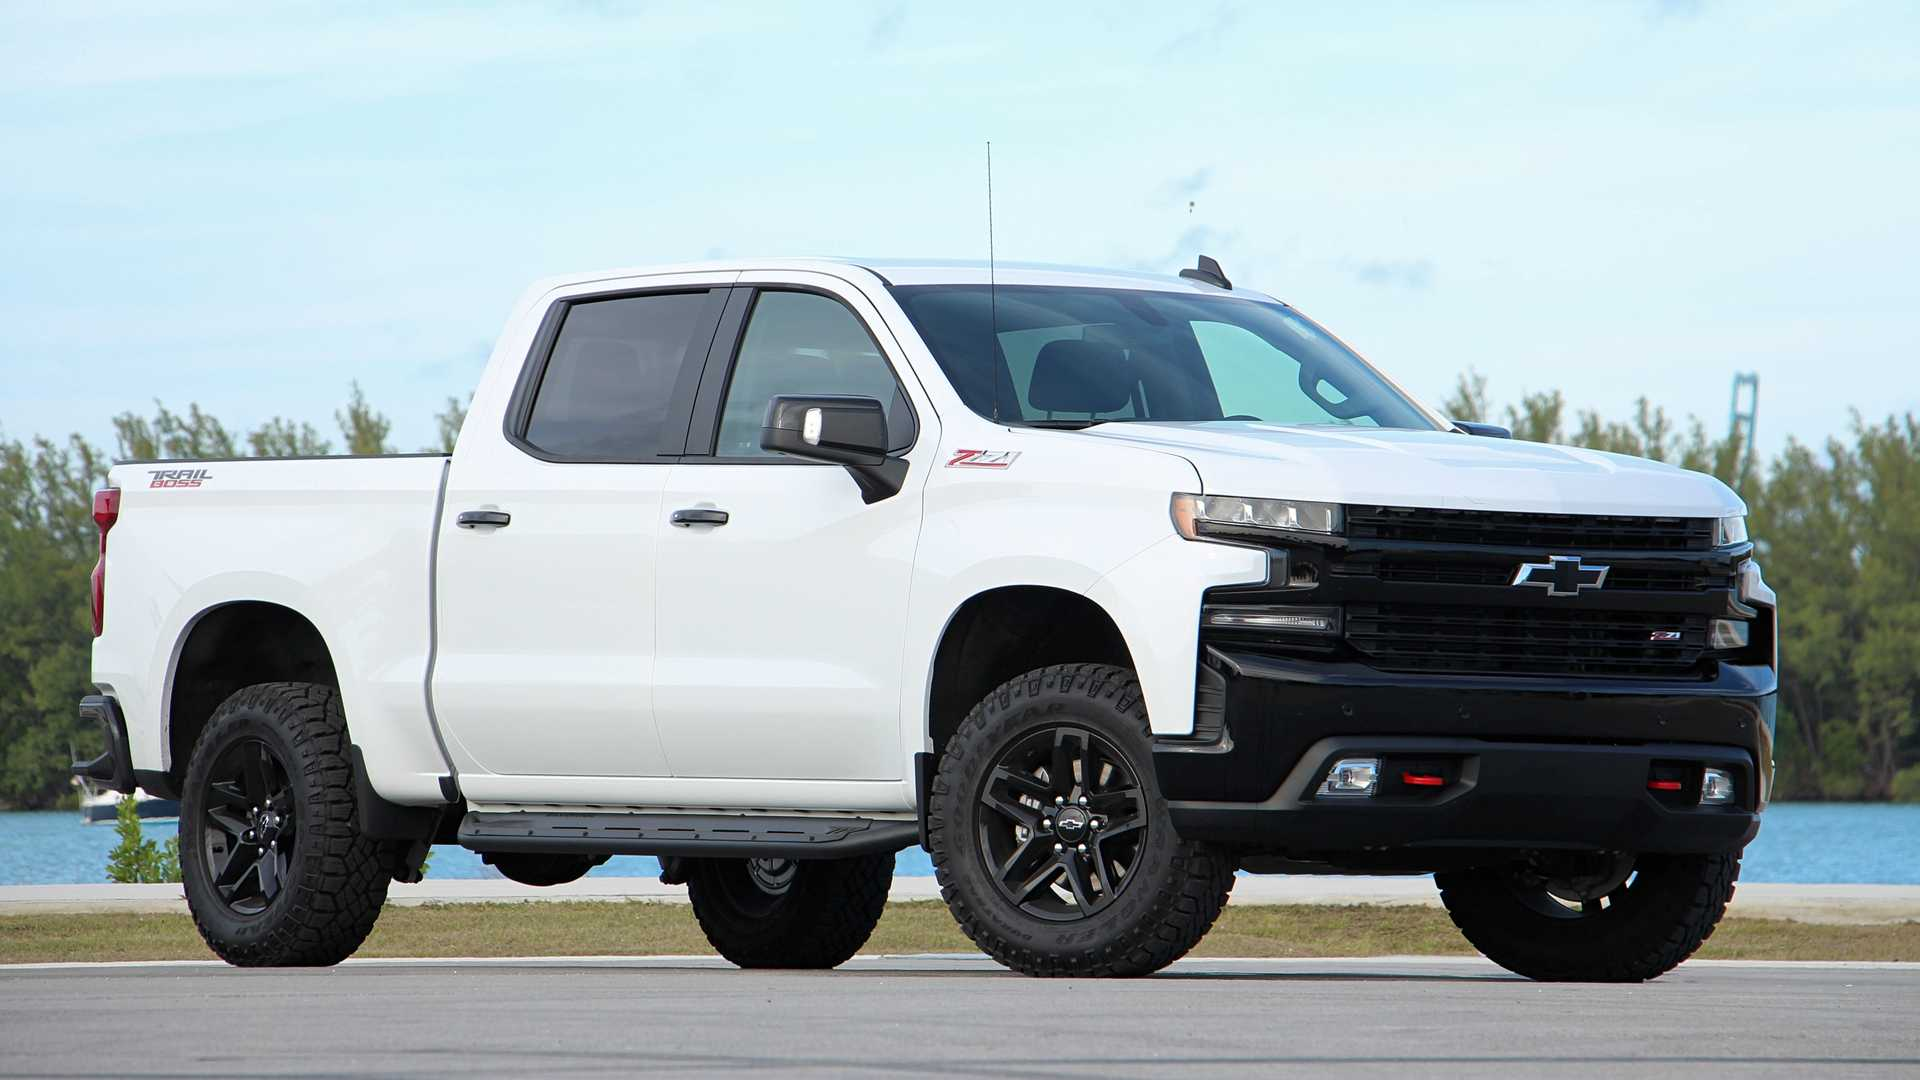 47 Great 2019 Chevrolet Silverado 1500 Review Review with 2019 Chevrolet Silverado 1500 Review